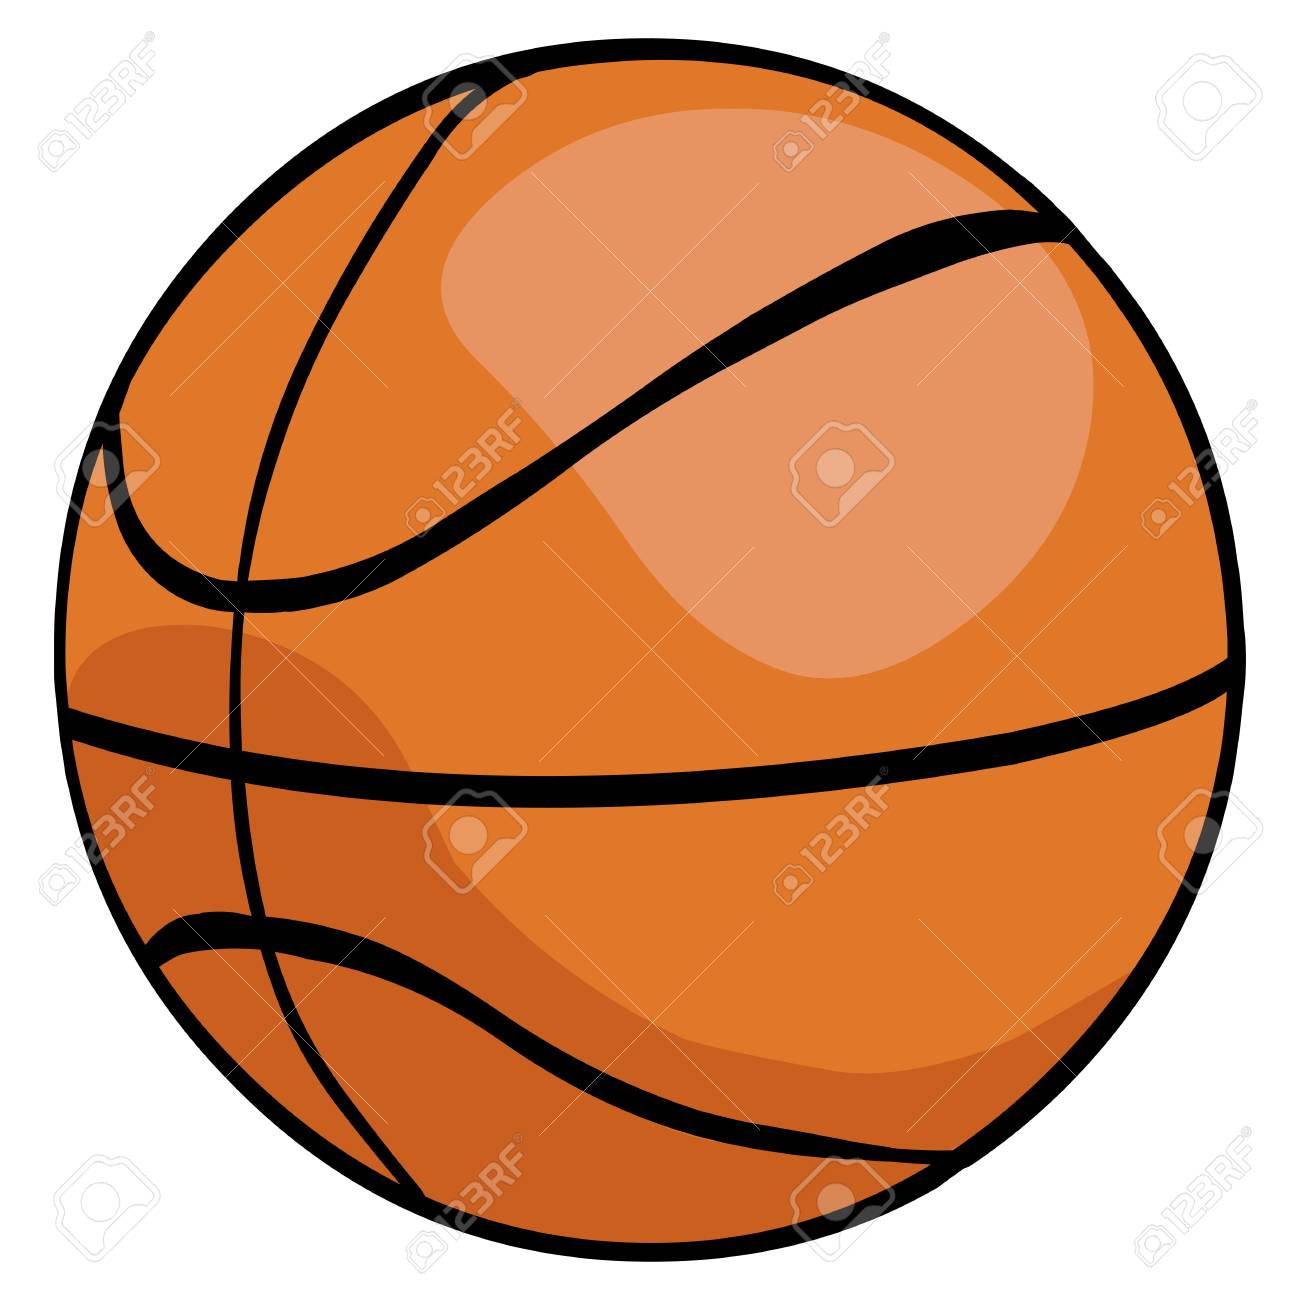 Vector Single Cartoon Basketball Ball On White Background Royalty Free Cliparts Vectors And Stock Illustration Image 63194158